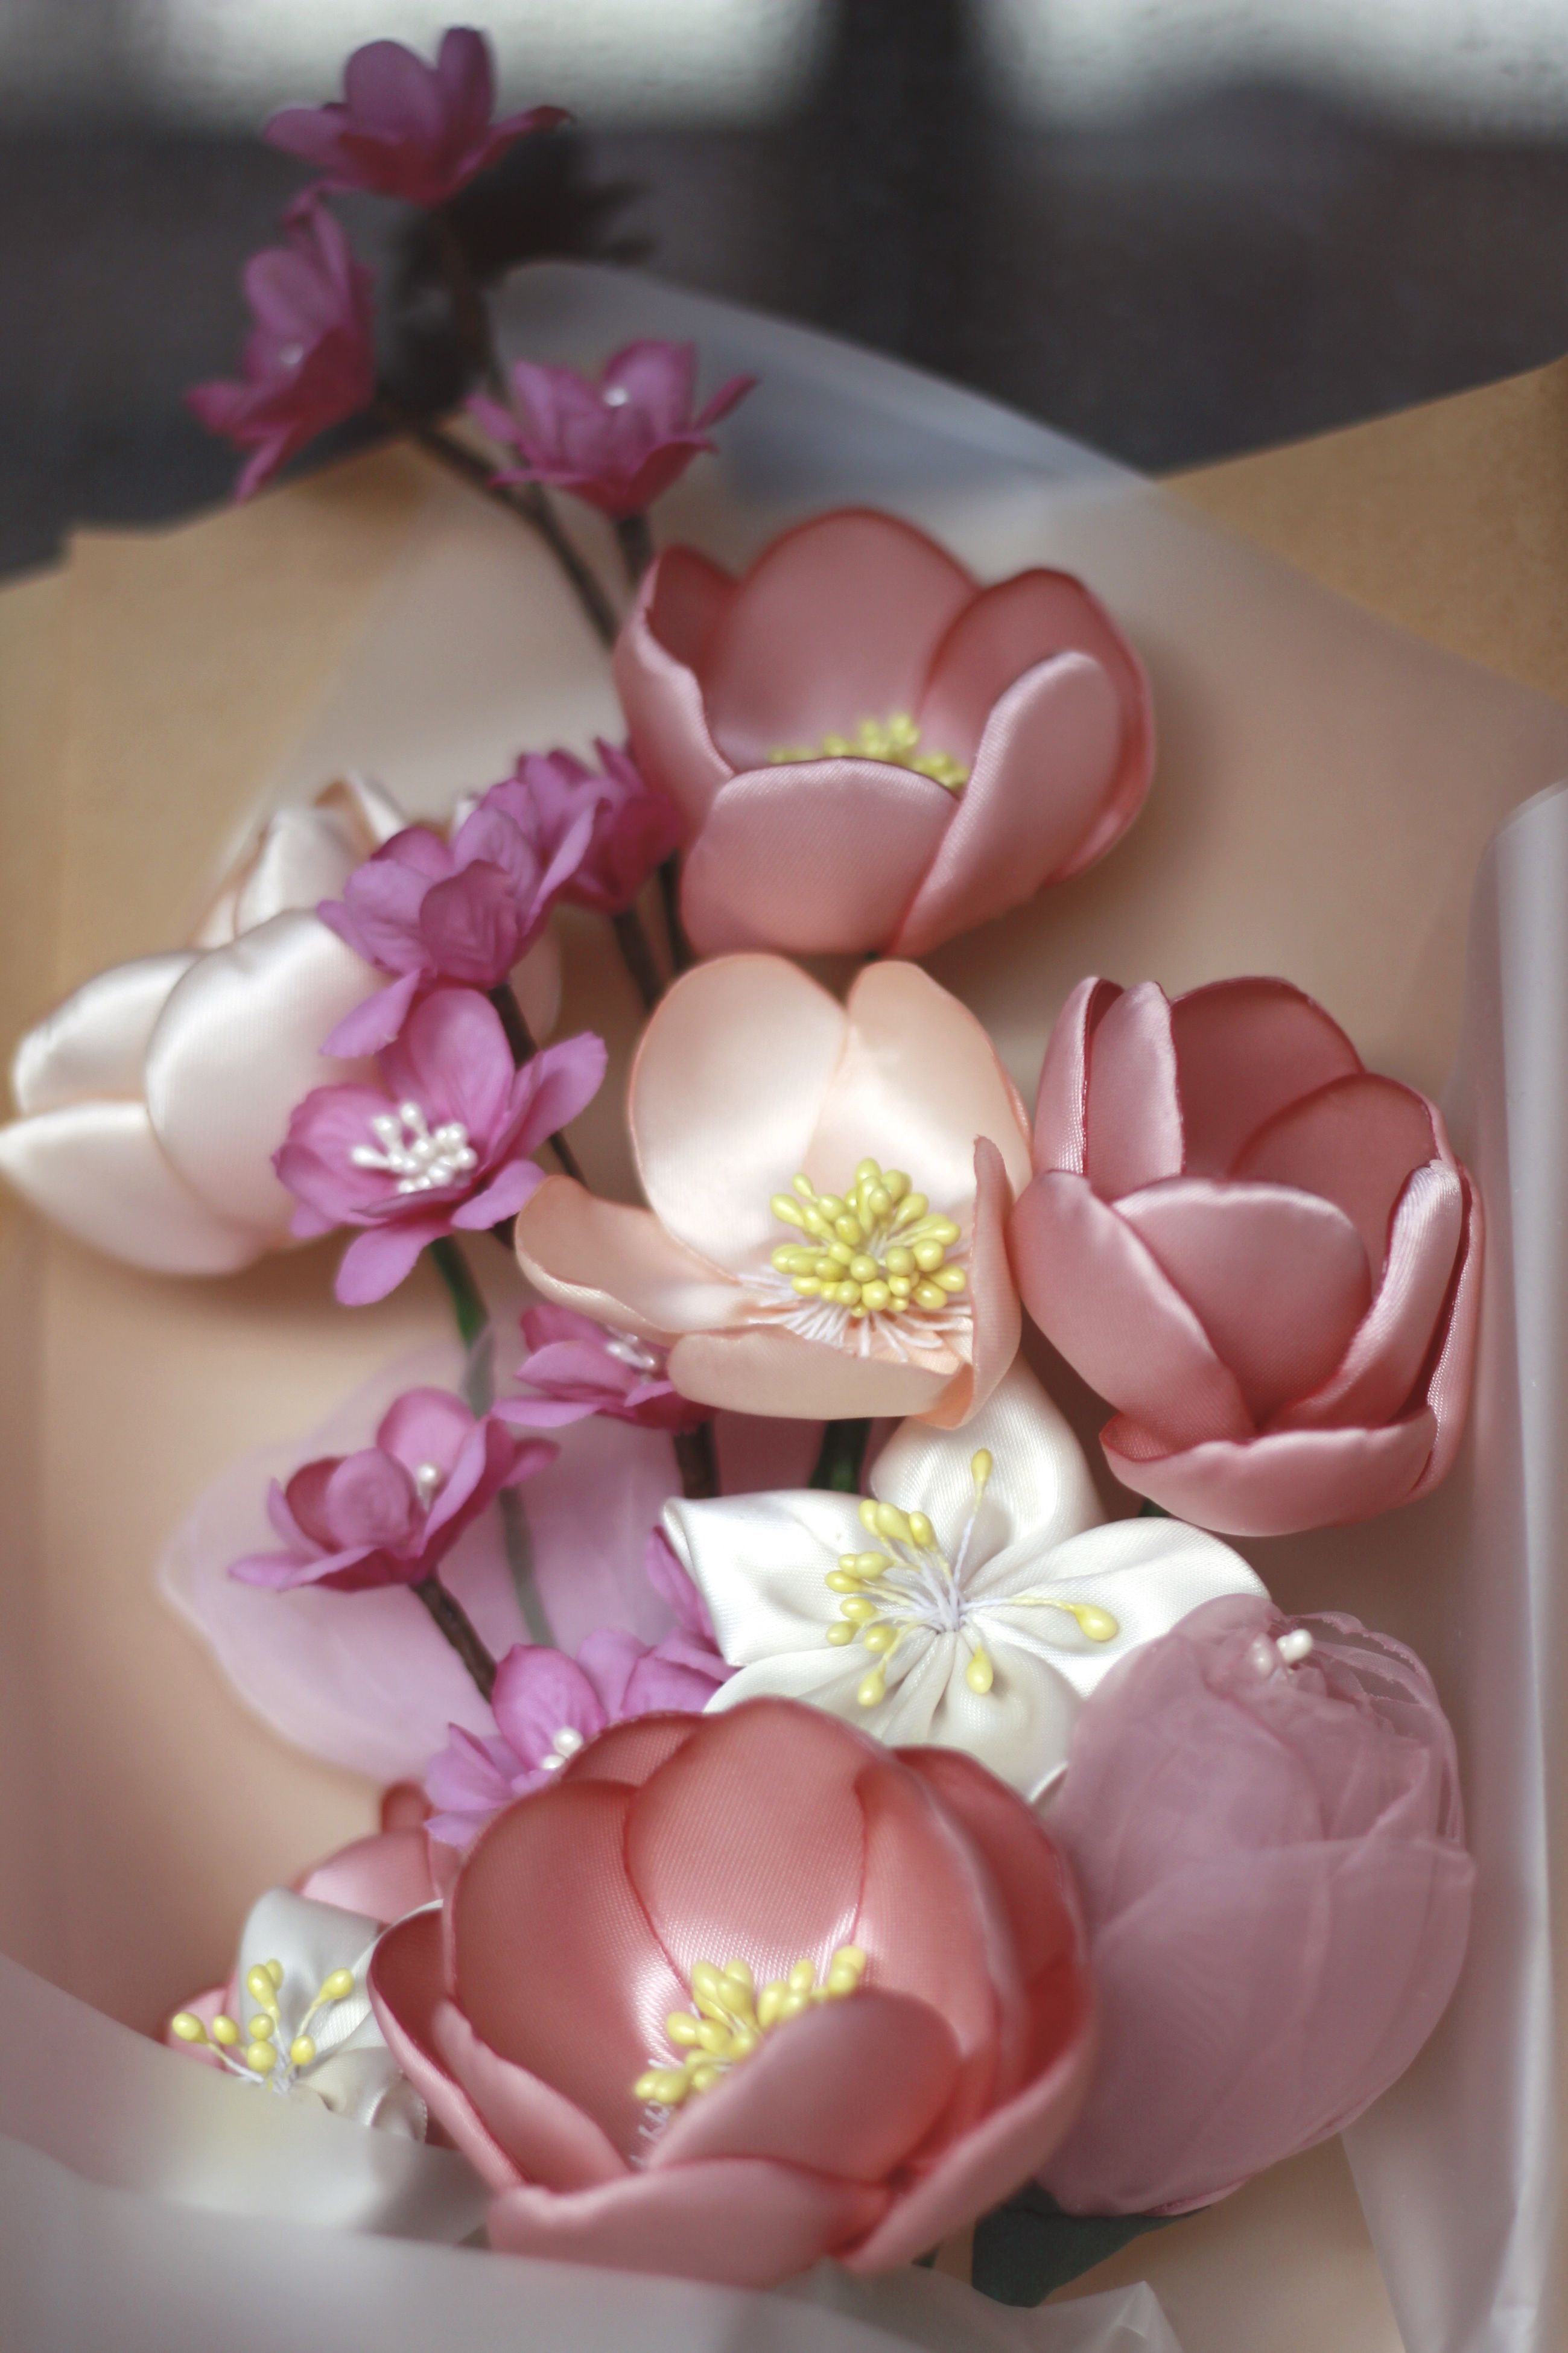 indoors, flower, freshness, pink color, fragility, close-up, vase, petal, bouquet, table, decoration, flower arrangement, still life, home interior, focus on foreground, flower head, rose - flower, bunch of flowers, pink, high angle view